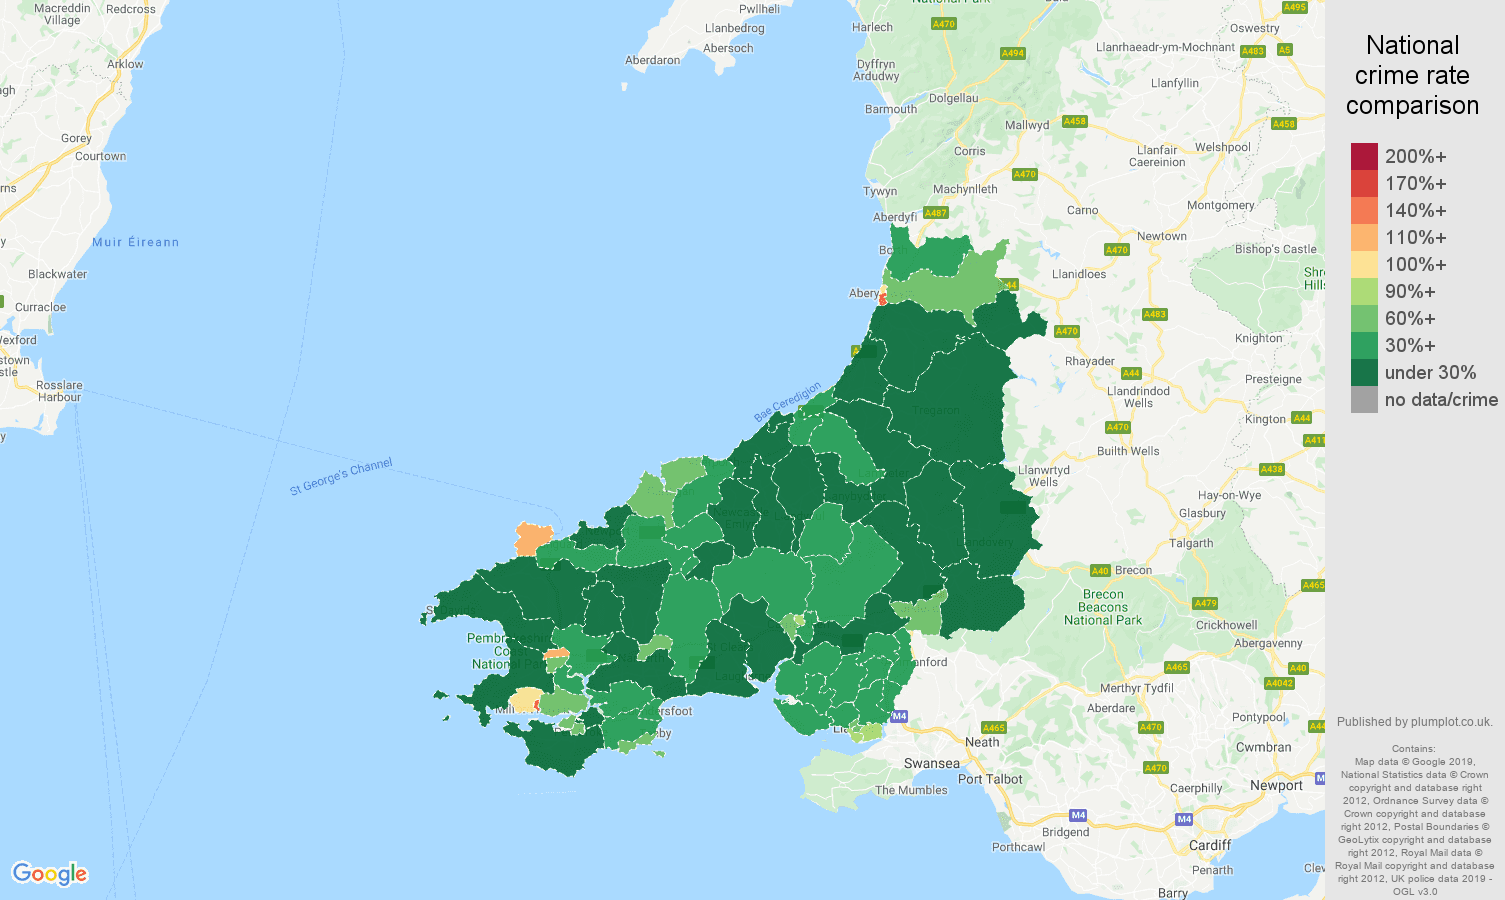 Dyfed public order crime rate comparison map